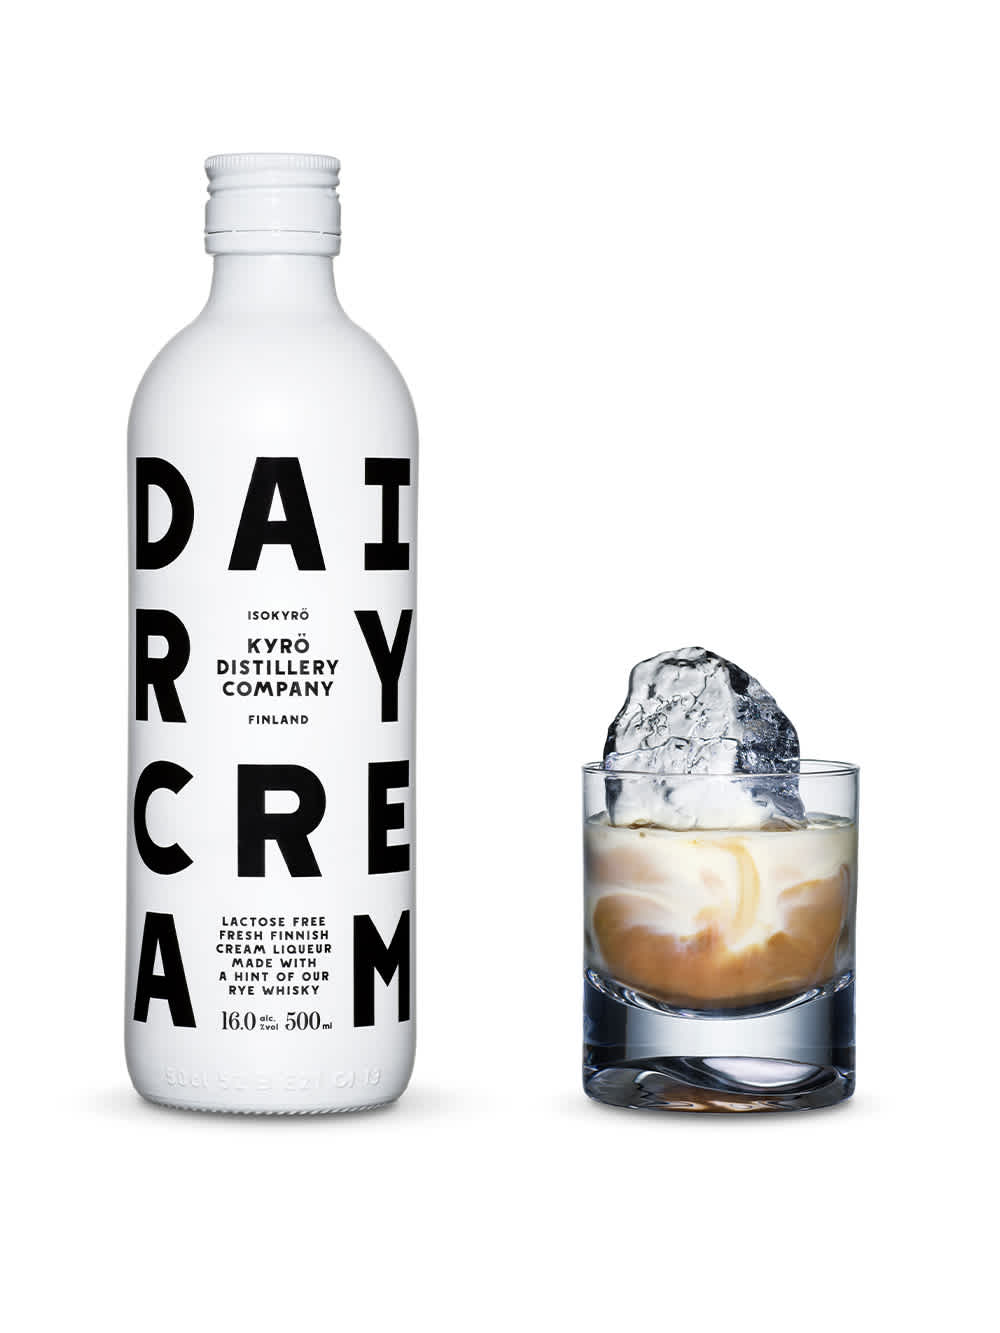 White, opaque bottles of Dairy Cream liquor with black font and Kyrö logo next to a tumbler glass filled with a shard of hand-cut ice, coffee, and Dairy Cream liquor. Produced in Isokyrö, Finnland.